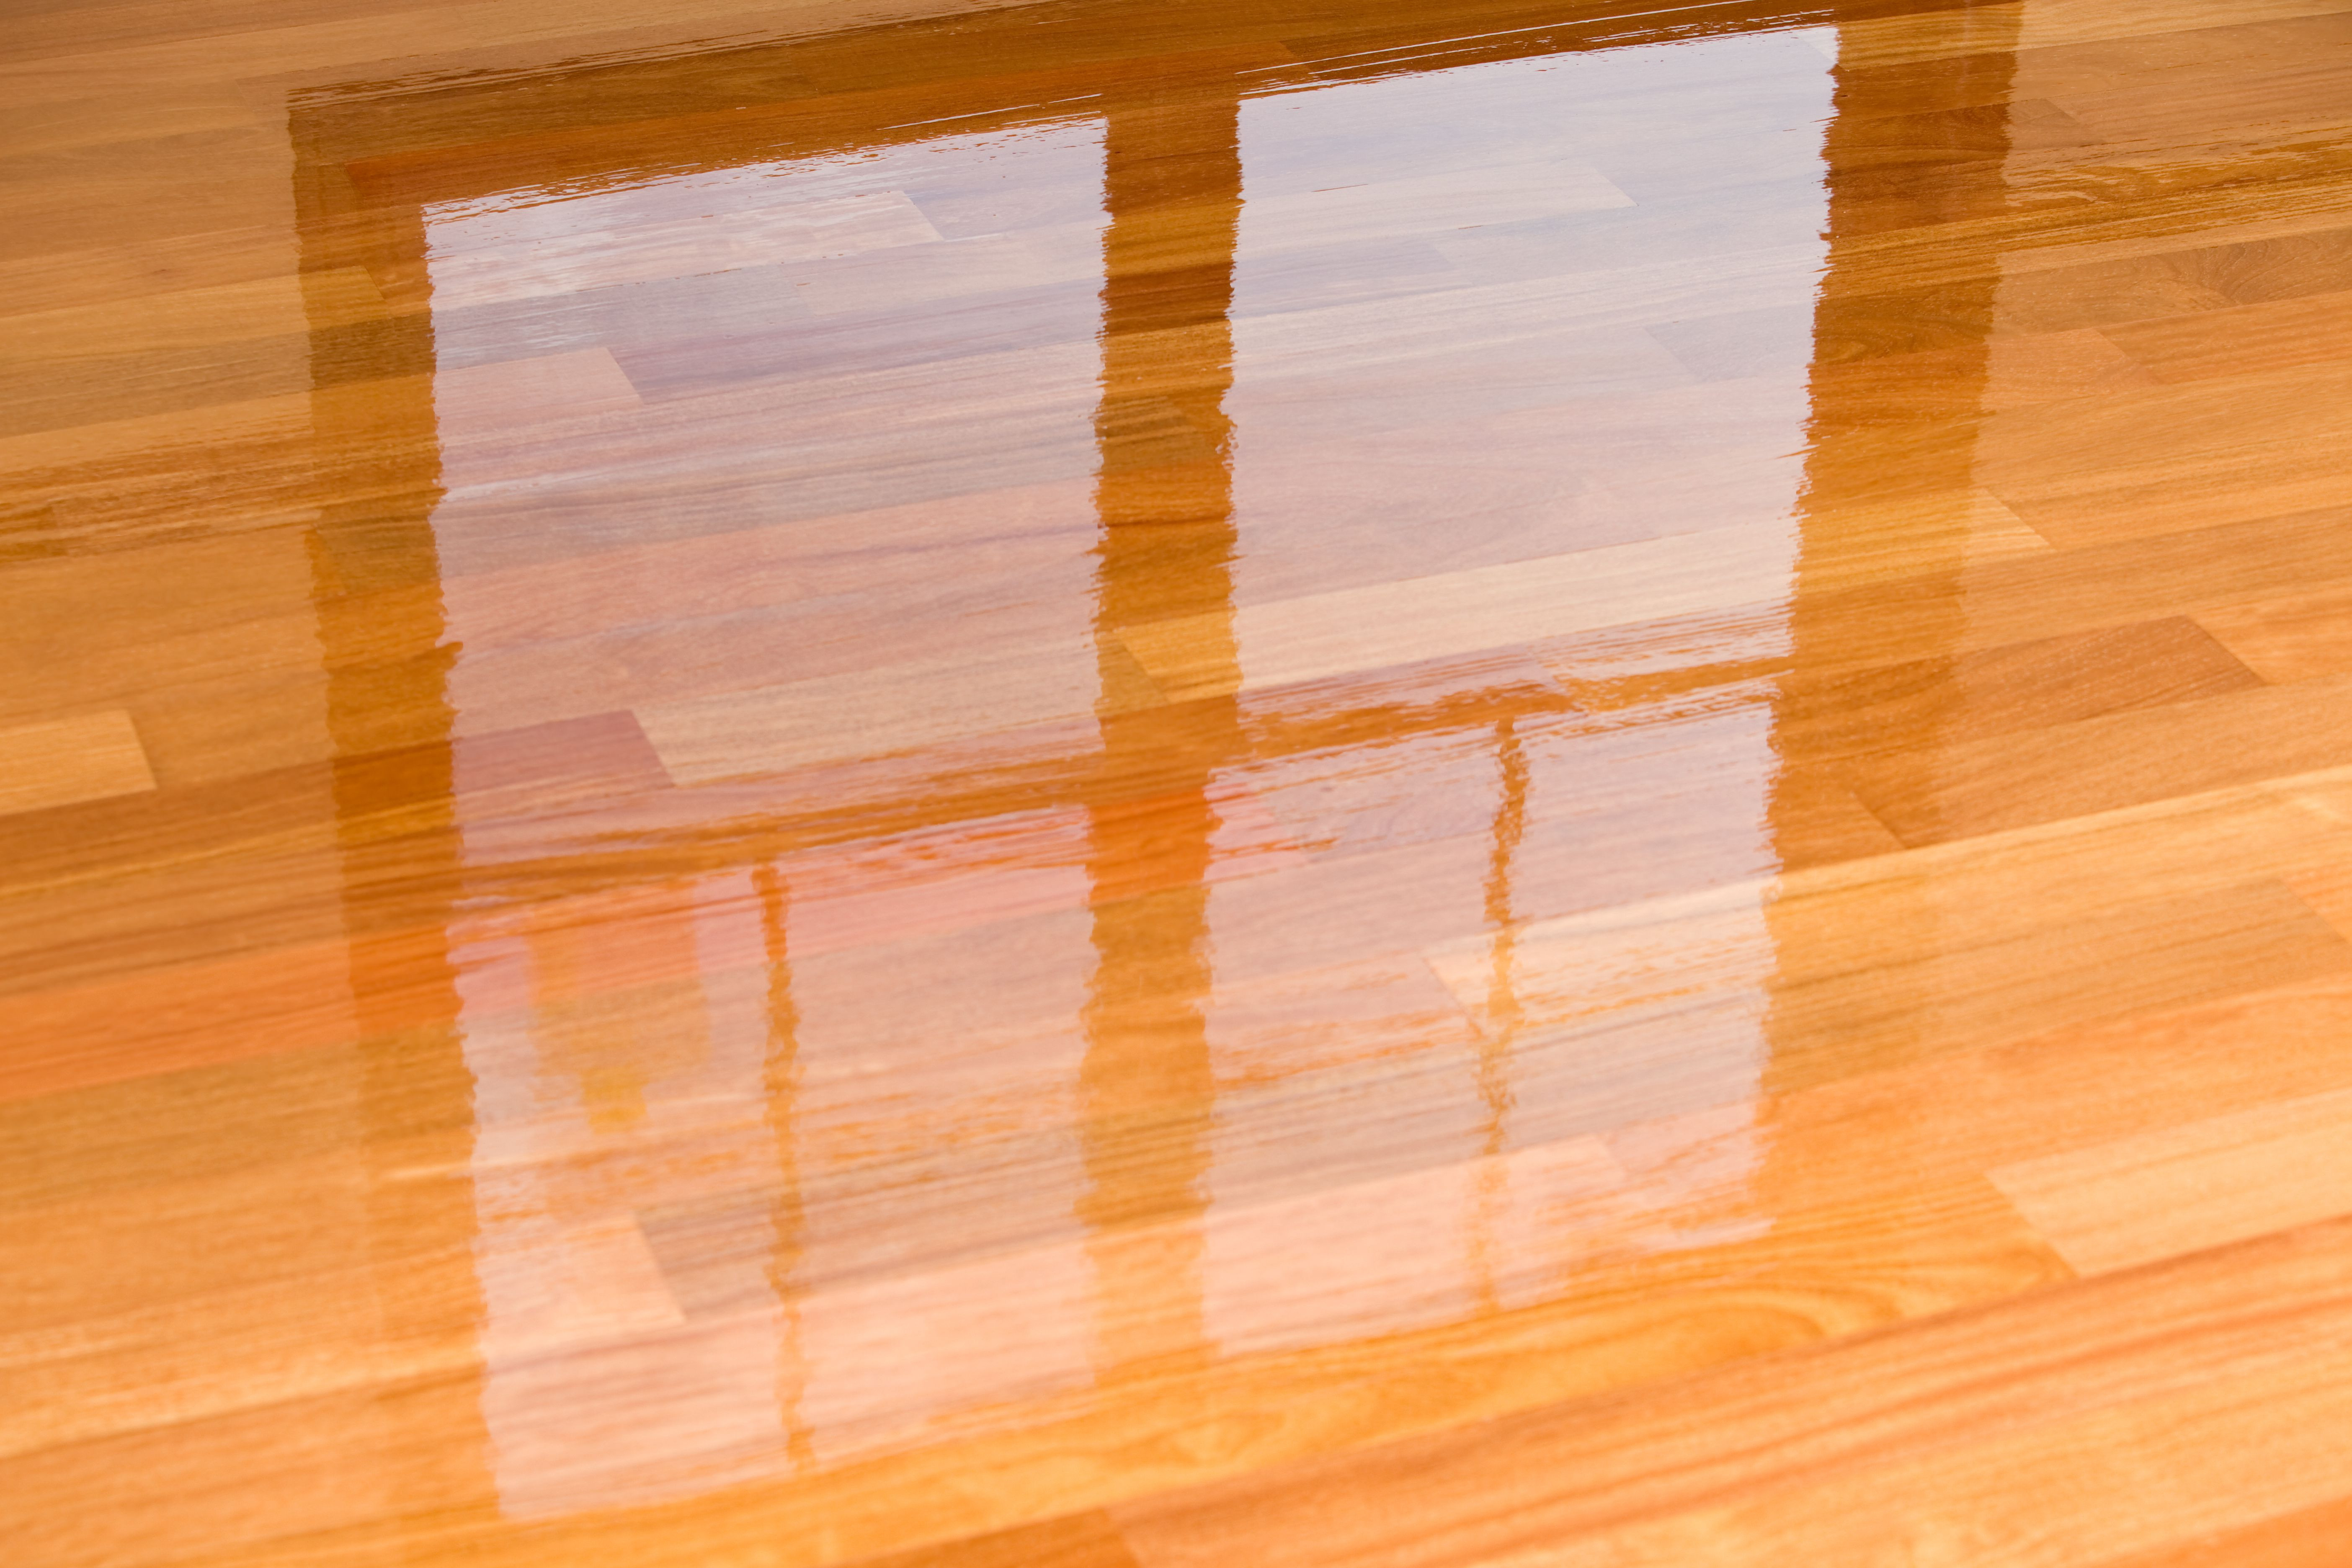 restoring hardwood floors under carpet of guide to laminate flooring water and damage repair with wet polyurethane on new hardwood floor with window reflection 183846705 582e34da3df78c6f6a403968